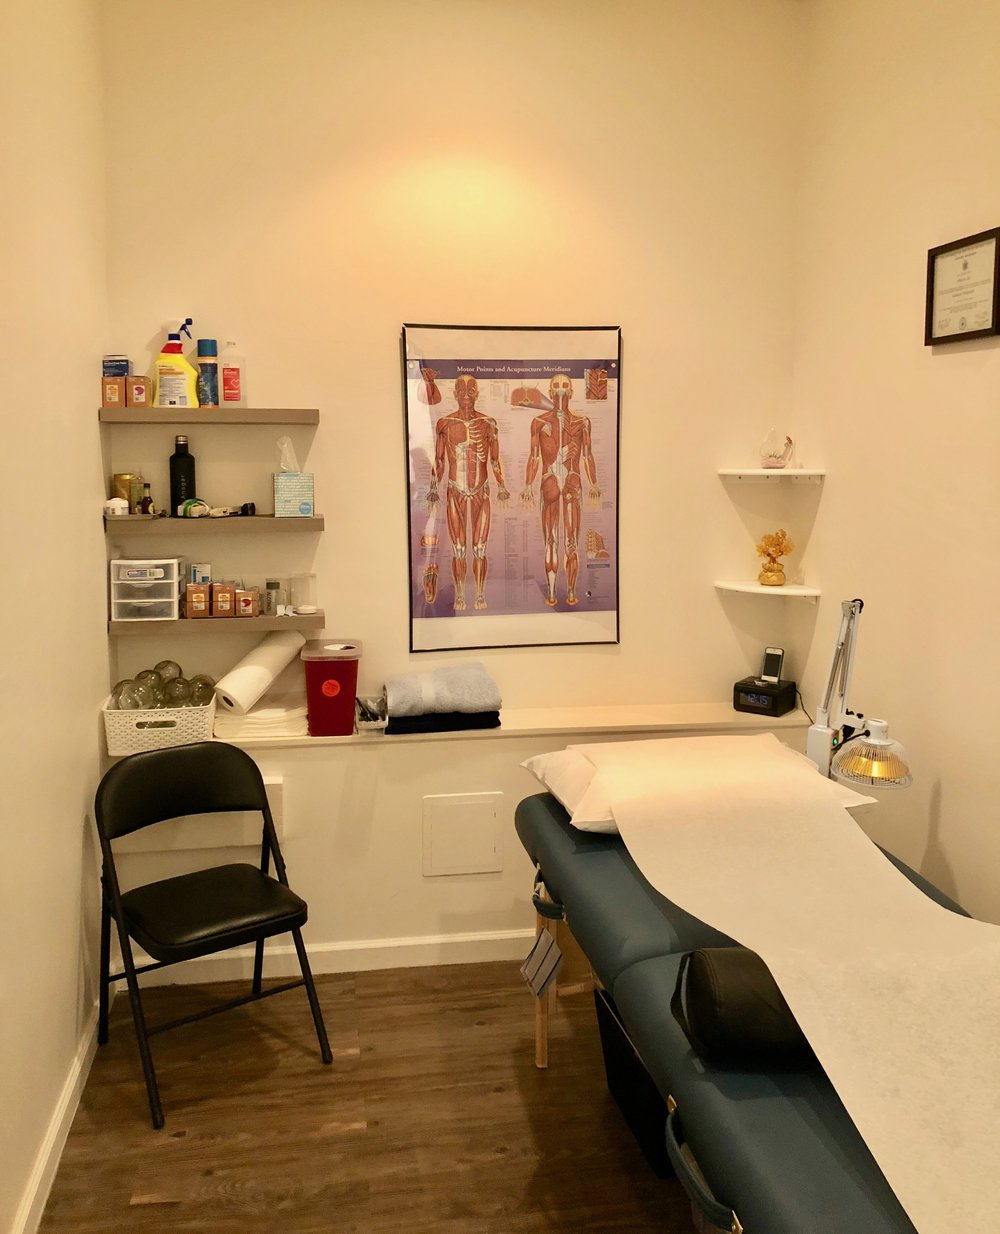 acupuncture nyc for fertility, acunpuncturist pain relief chelsea ny